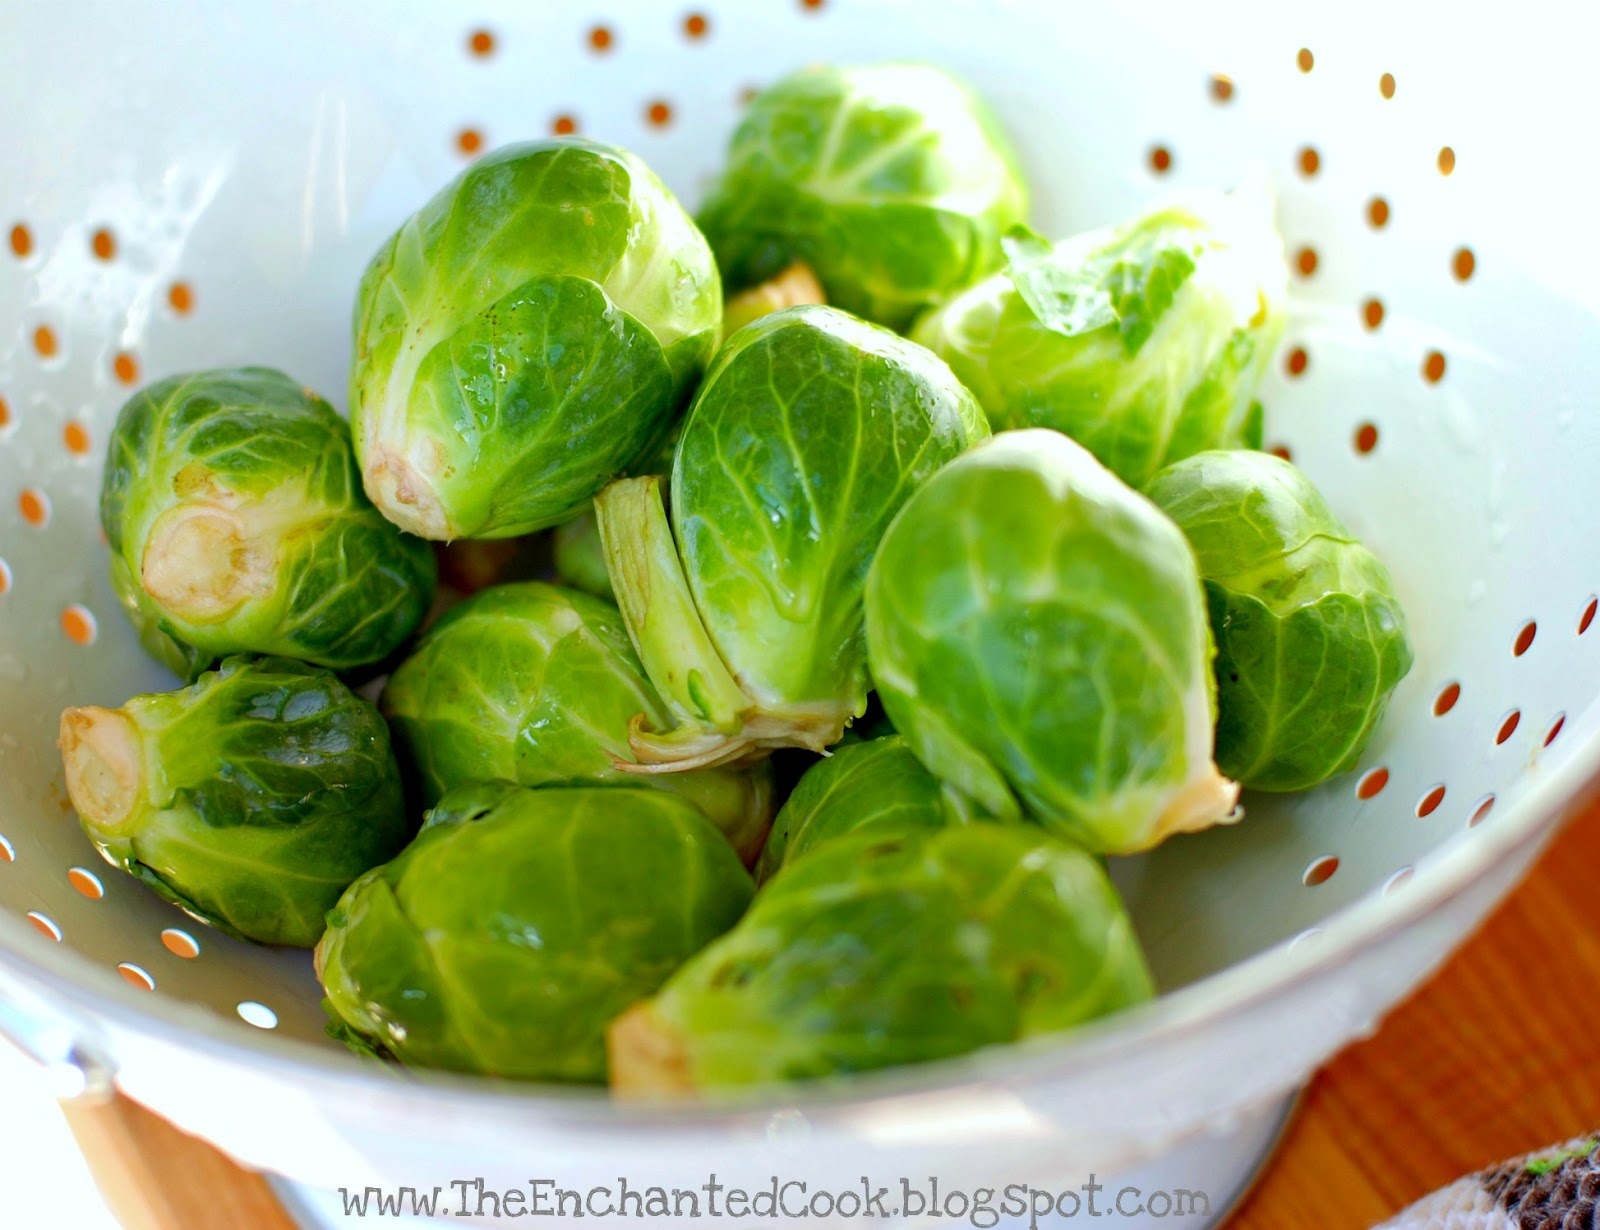 The Enchanted Cook: The Easiest and Best Roasted Brussels Sprouts Ever